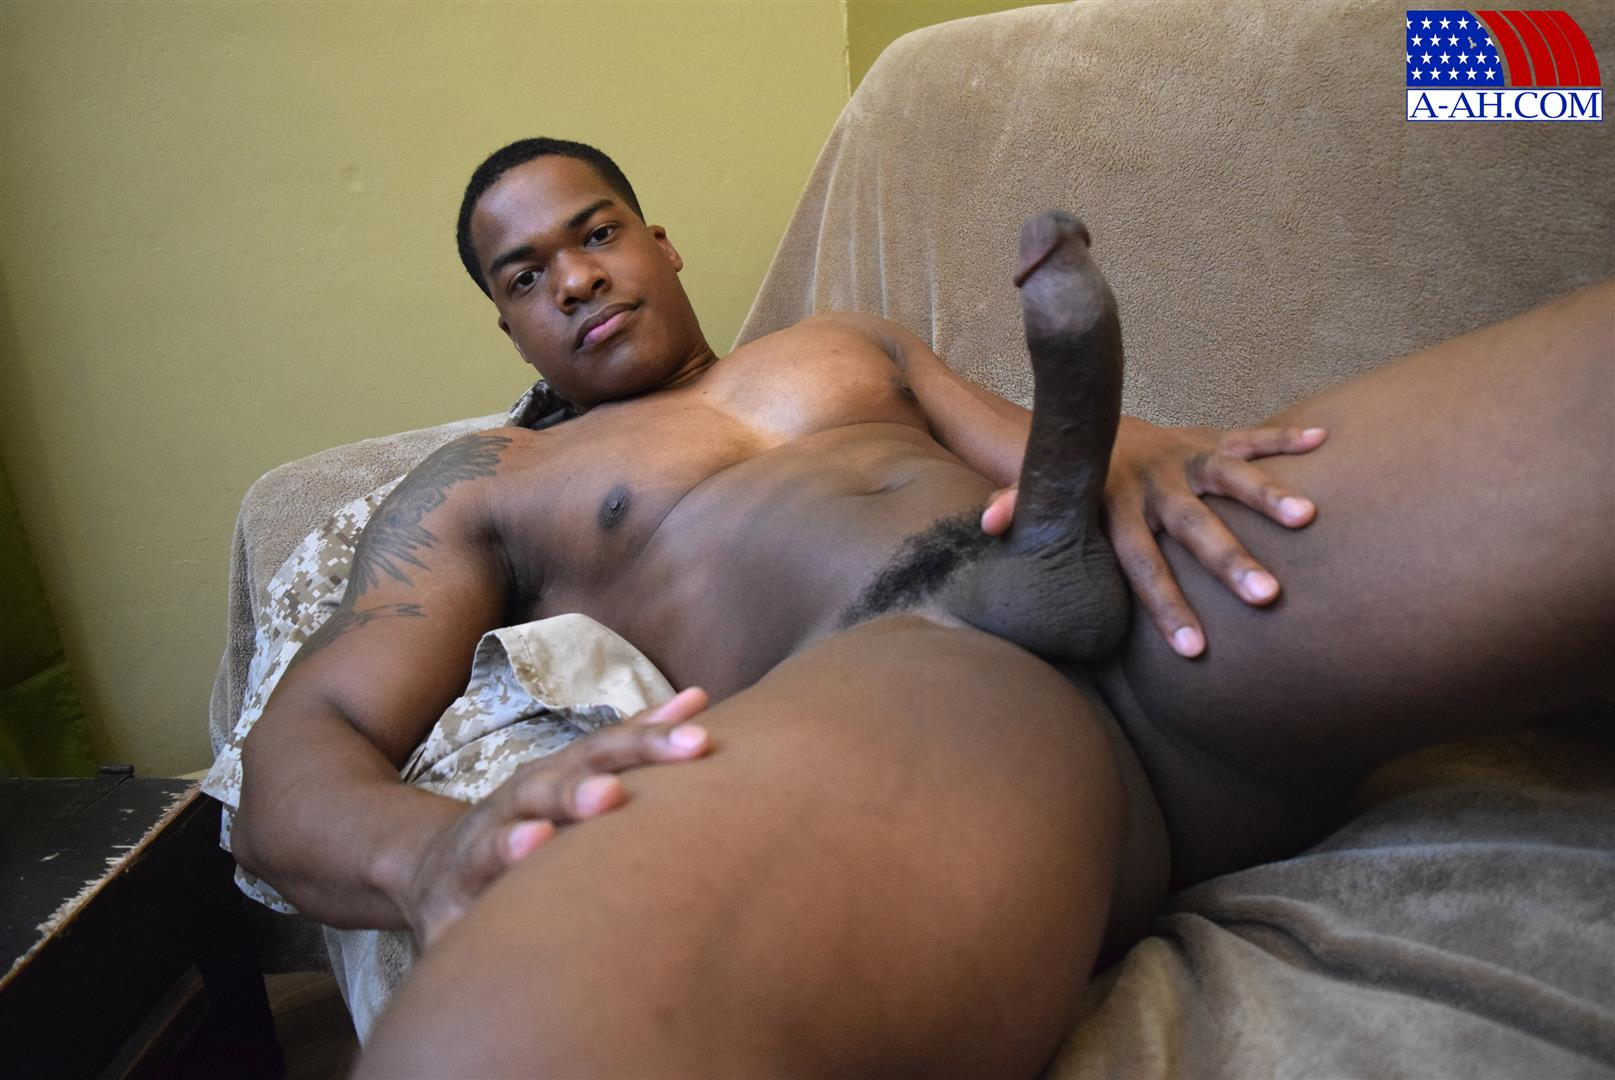 All-American-Heroes-Sean-Muscle-Navy-Petty-Officer-Jerking-Big-Black-Cock-Amateur-Gay-Porn-04 Big Muscular Black Navy Petty Officer Jerking His Big Black Cock